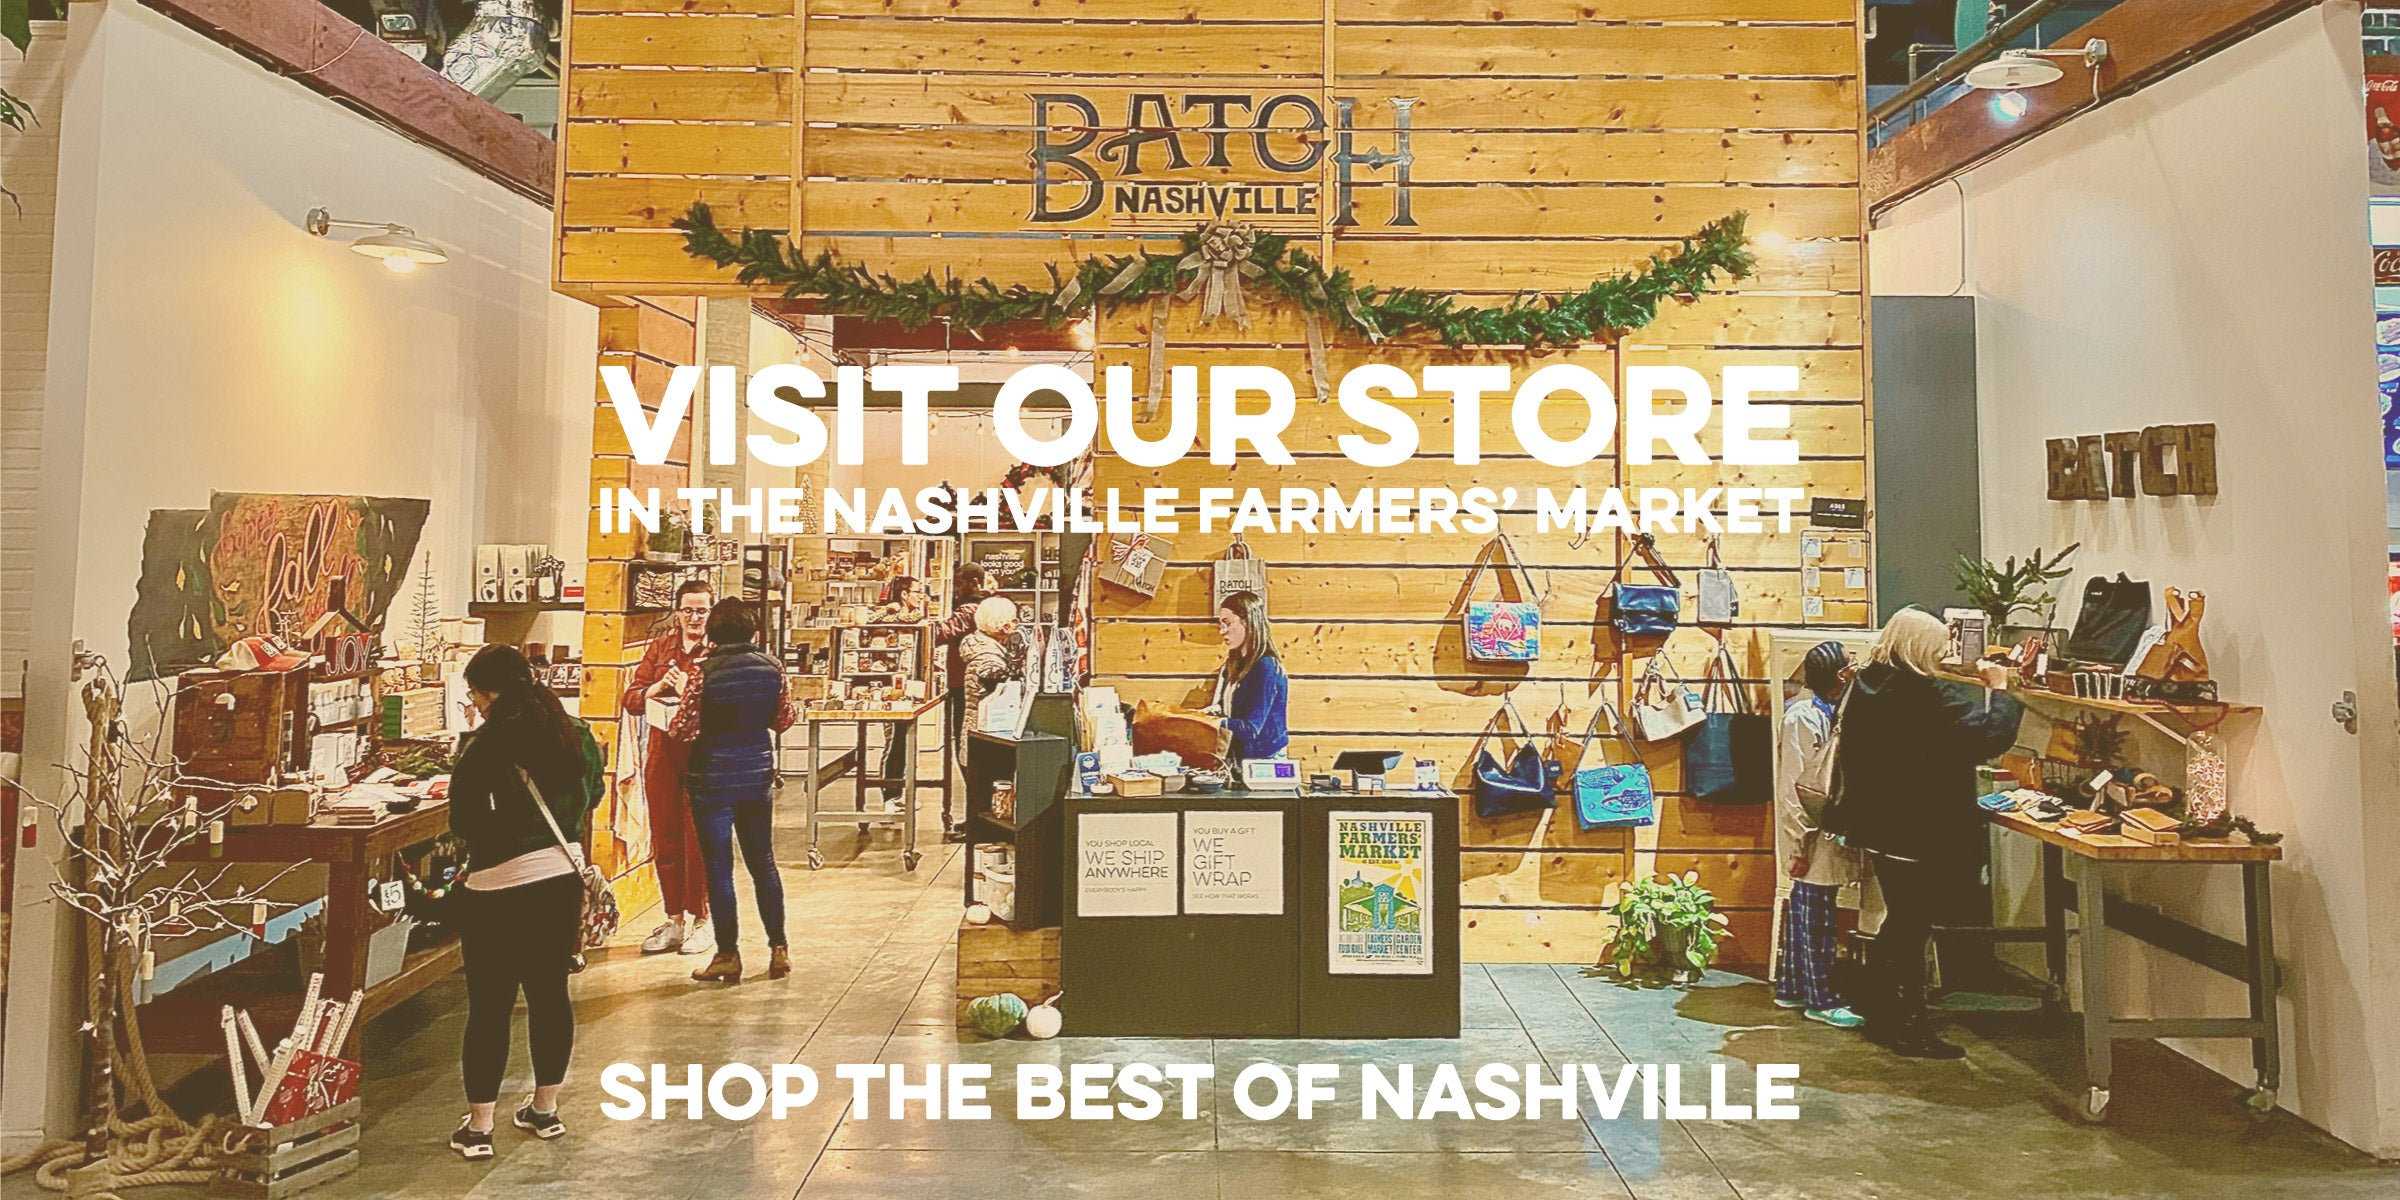 Visit our store in the Nashville Farmers Market